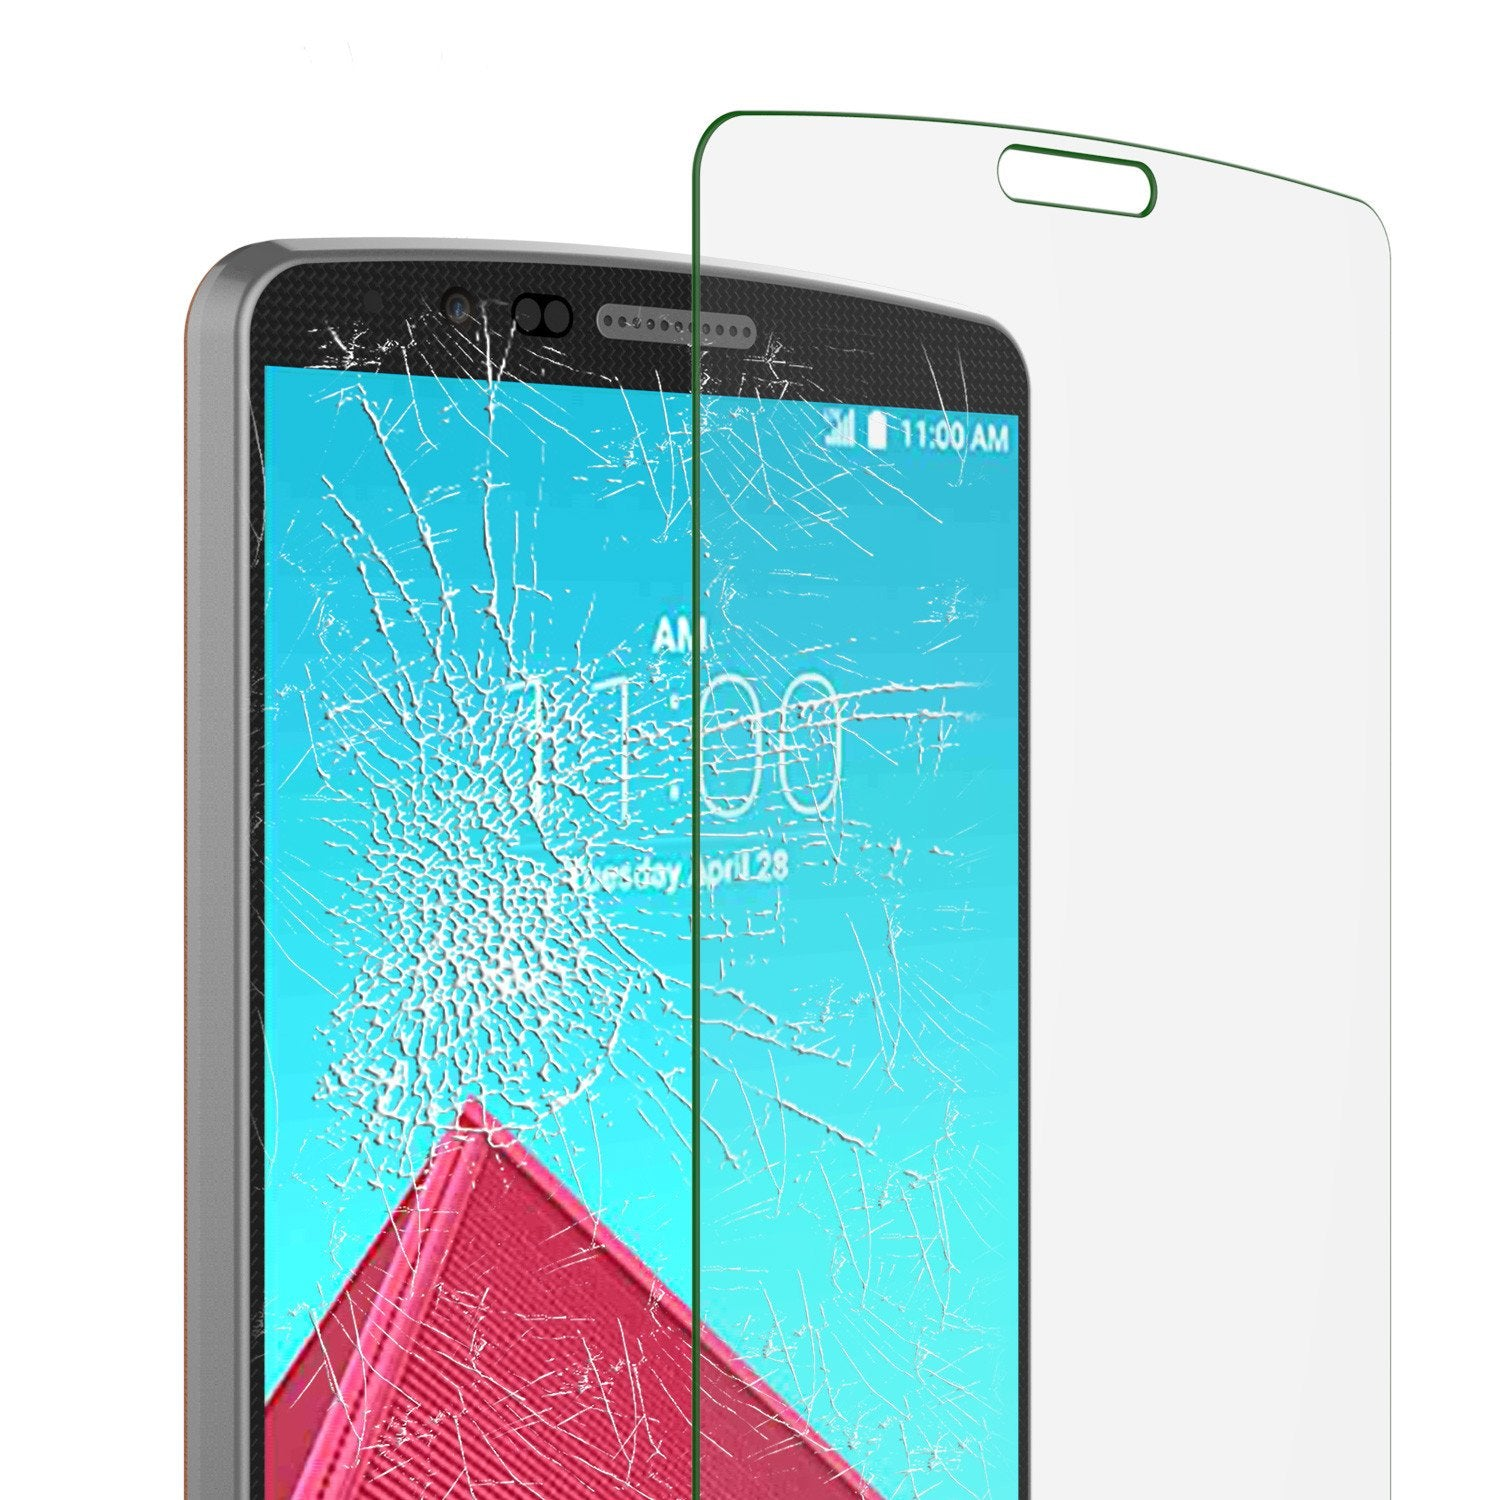 LG G4 Punkcase Glass SHIELD Tempered Glass Screen Protector 0.33mm Thick 9H Glass - PunkCase NZ